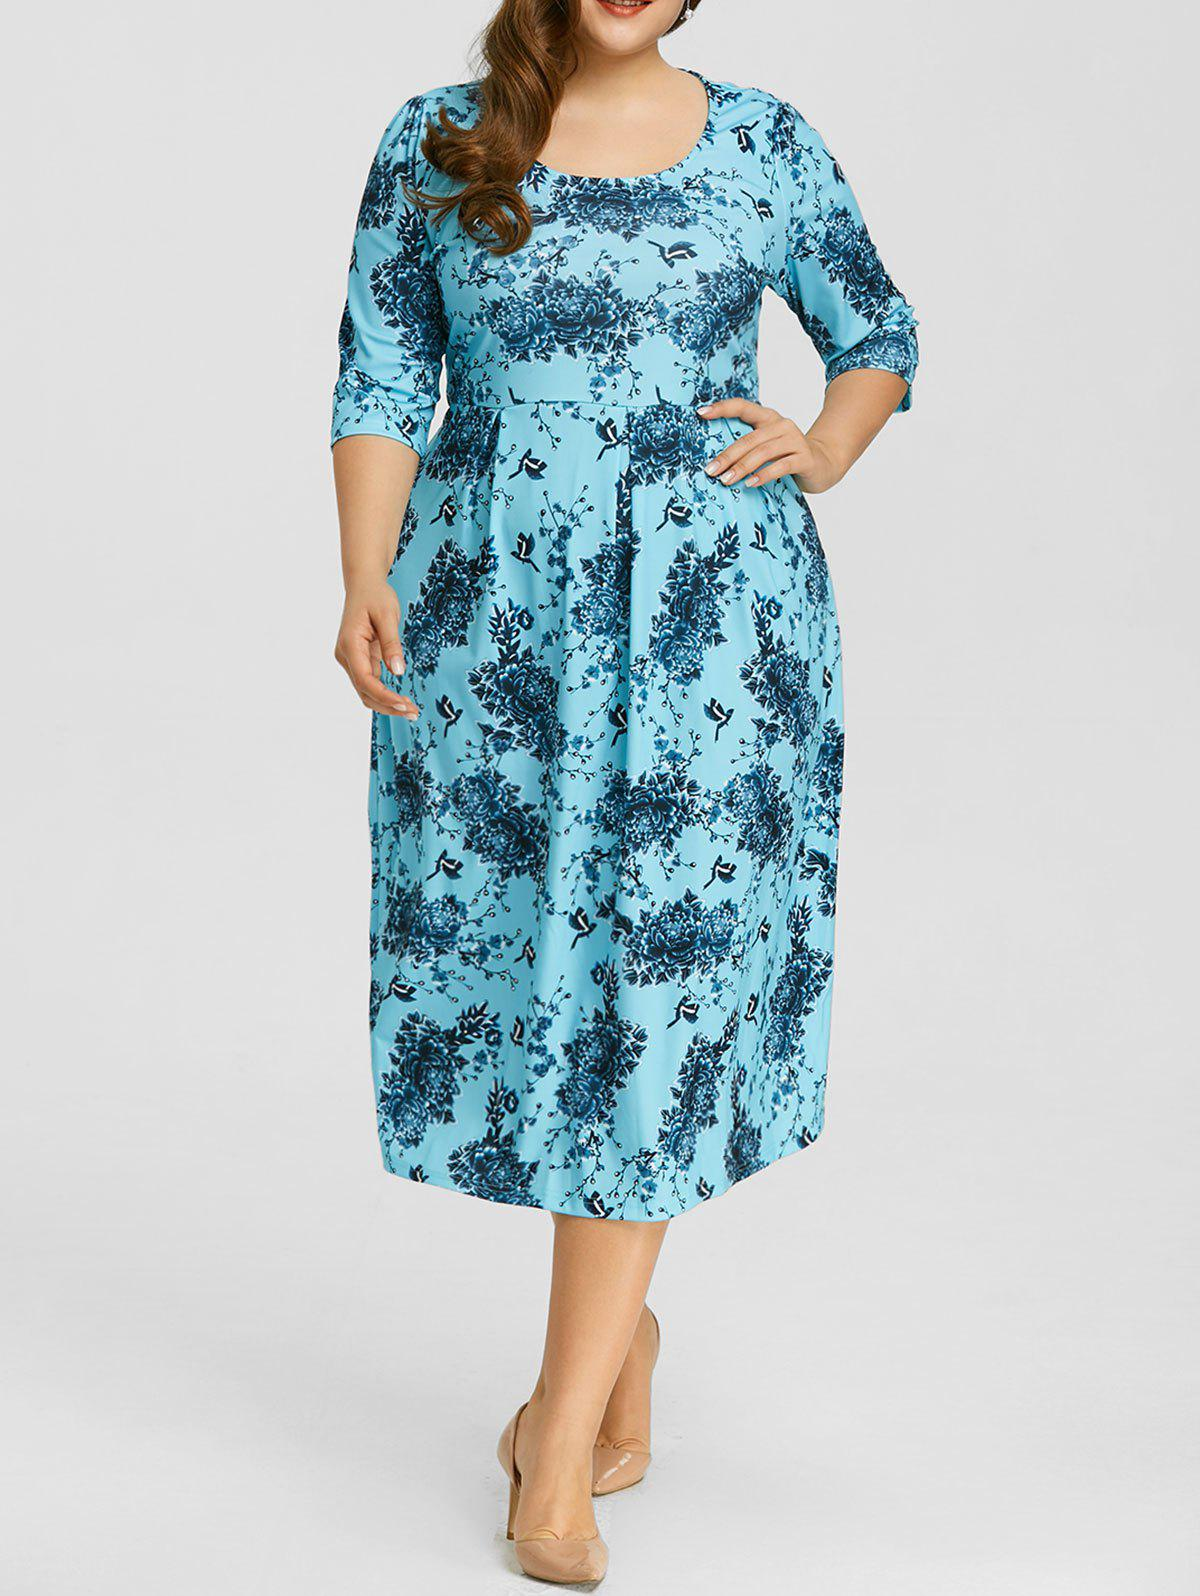 Hot Floral Print Plus Size Midi Dress